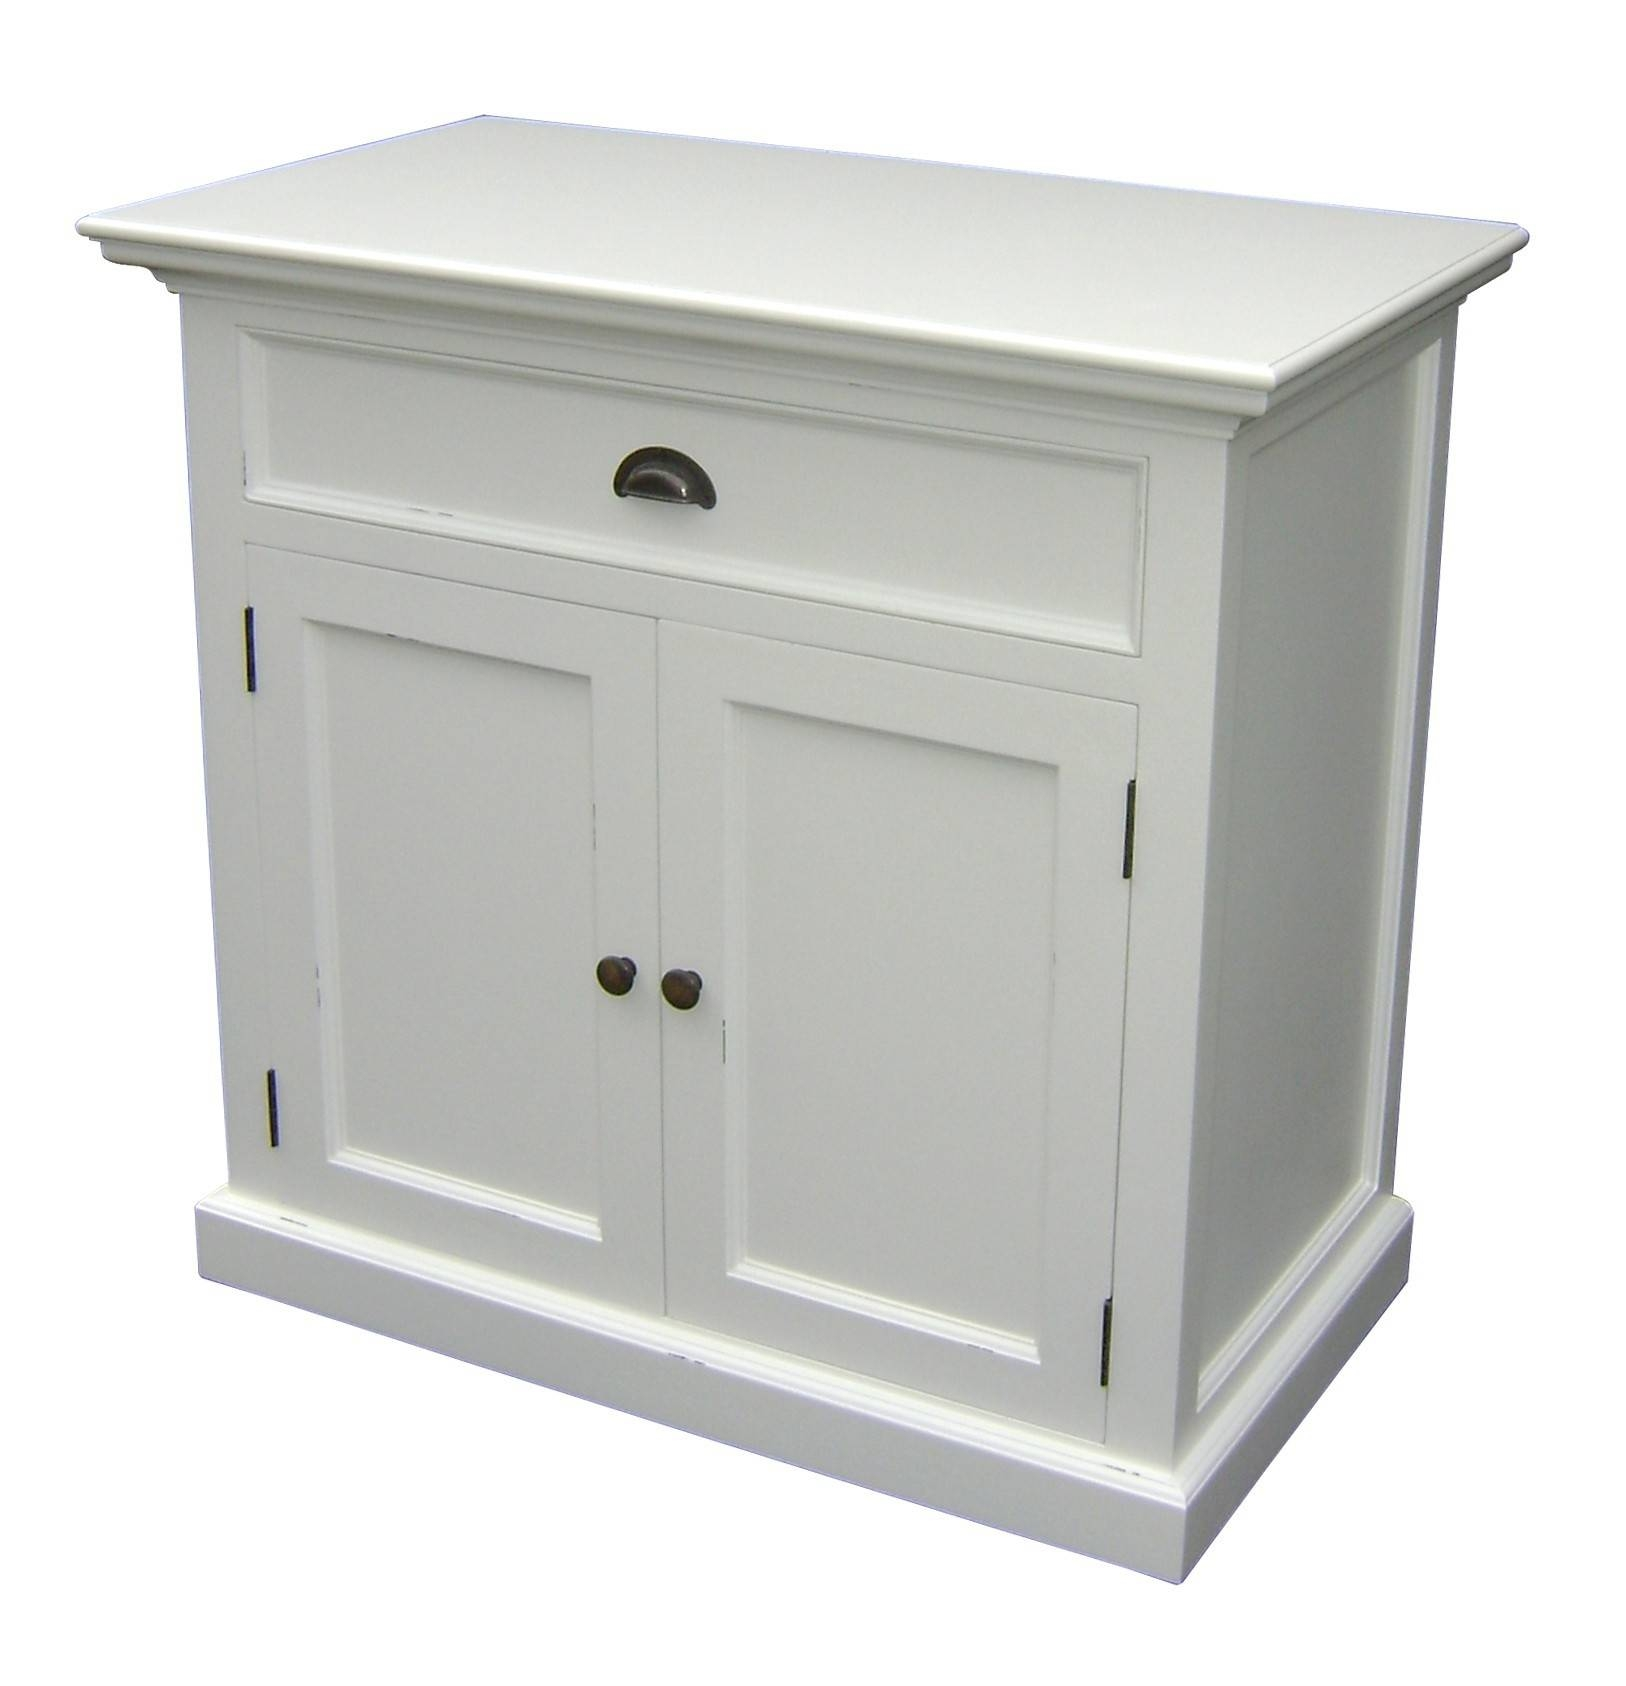 Kitchen : Narrow Sideboard Bar Sideboard Small Buffet Hutch Regarding Small Sideboards And Buffets (#3 of 15)